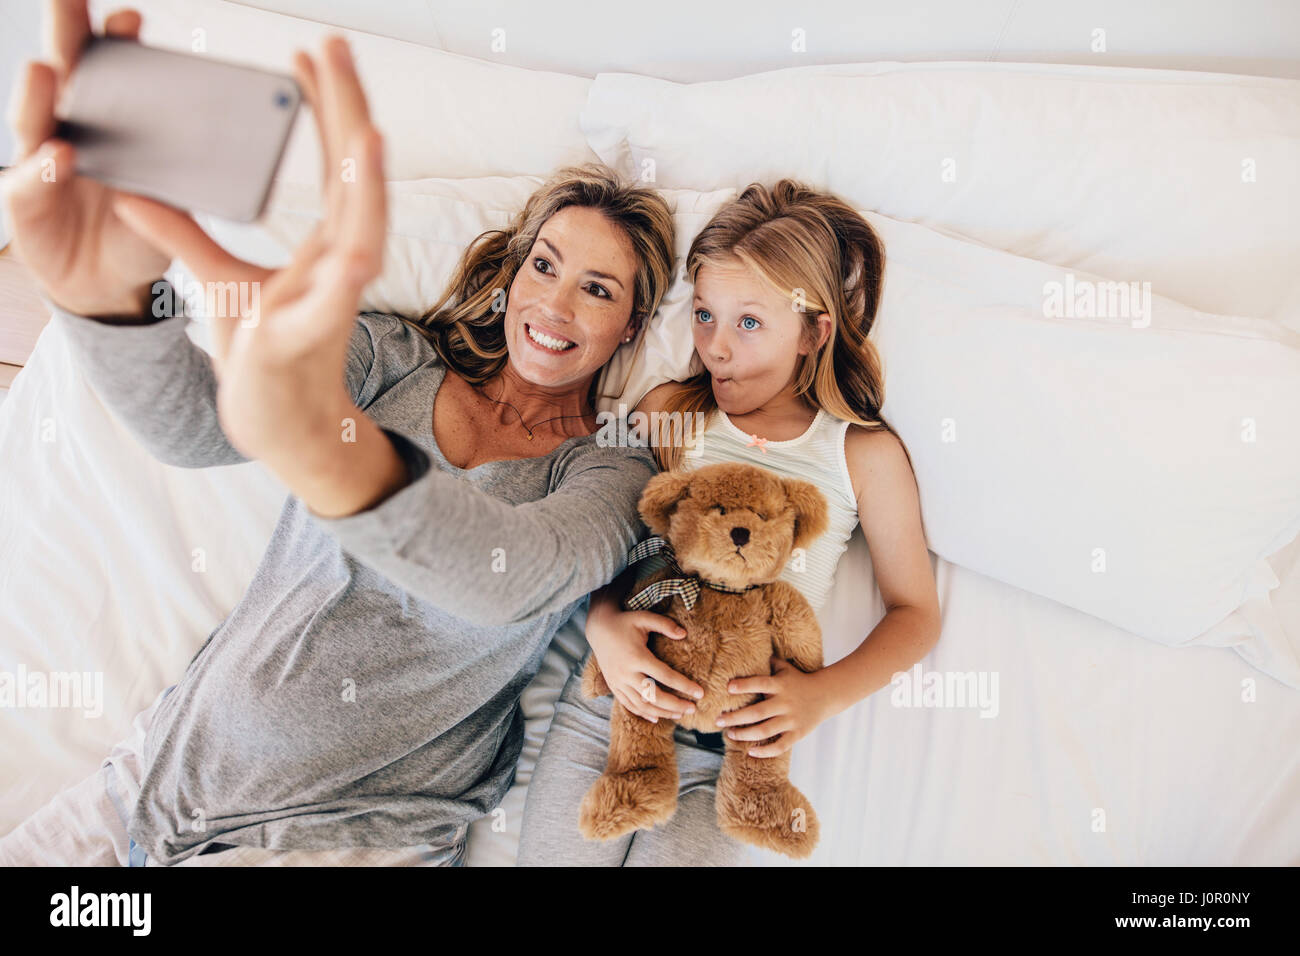 Mother and Daughter lying on bed and taking self portrait avec téléphone mobile. Femme tenant une petite Photo Stock